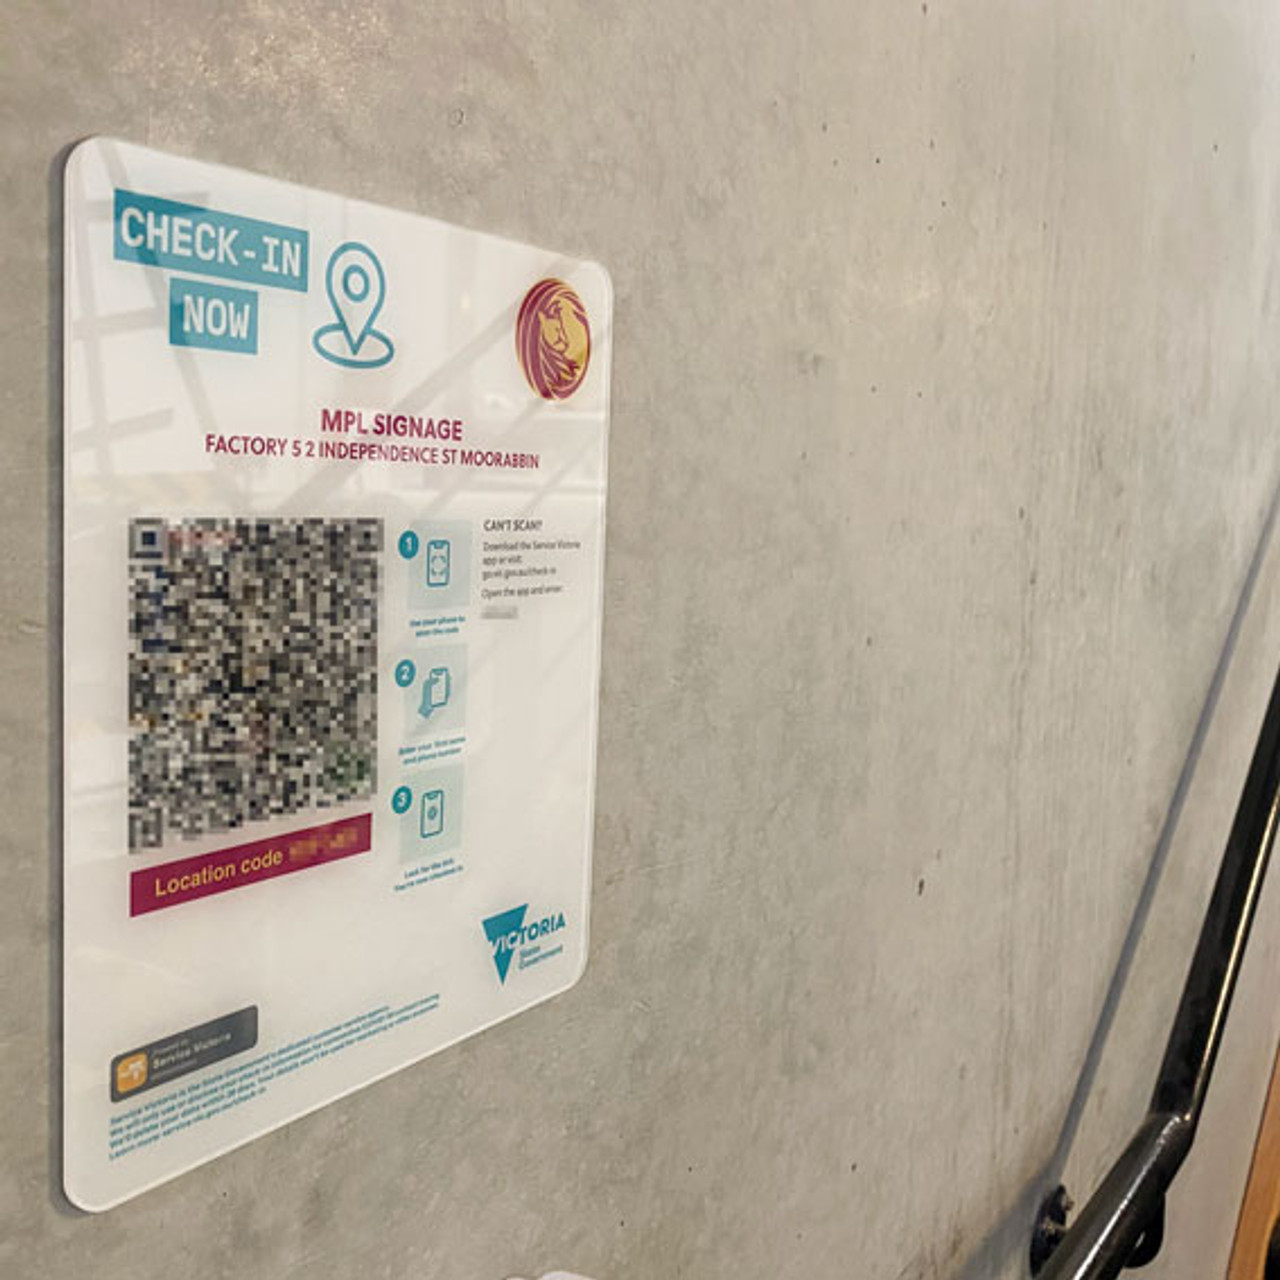 Example of QR Code Check-in Sign